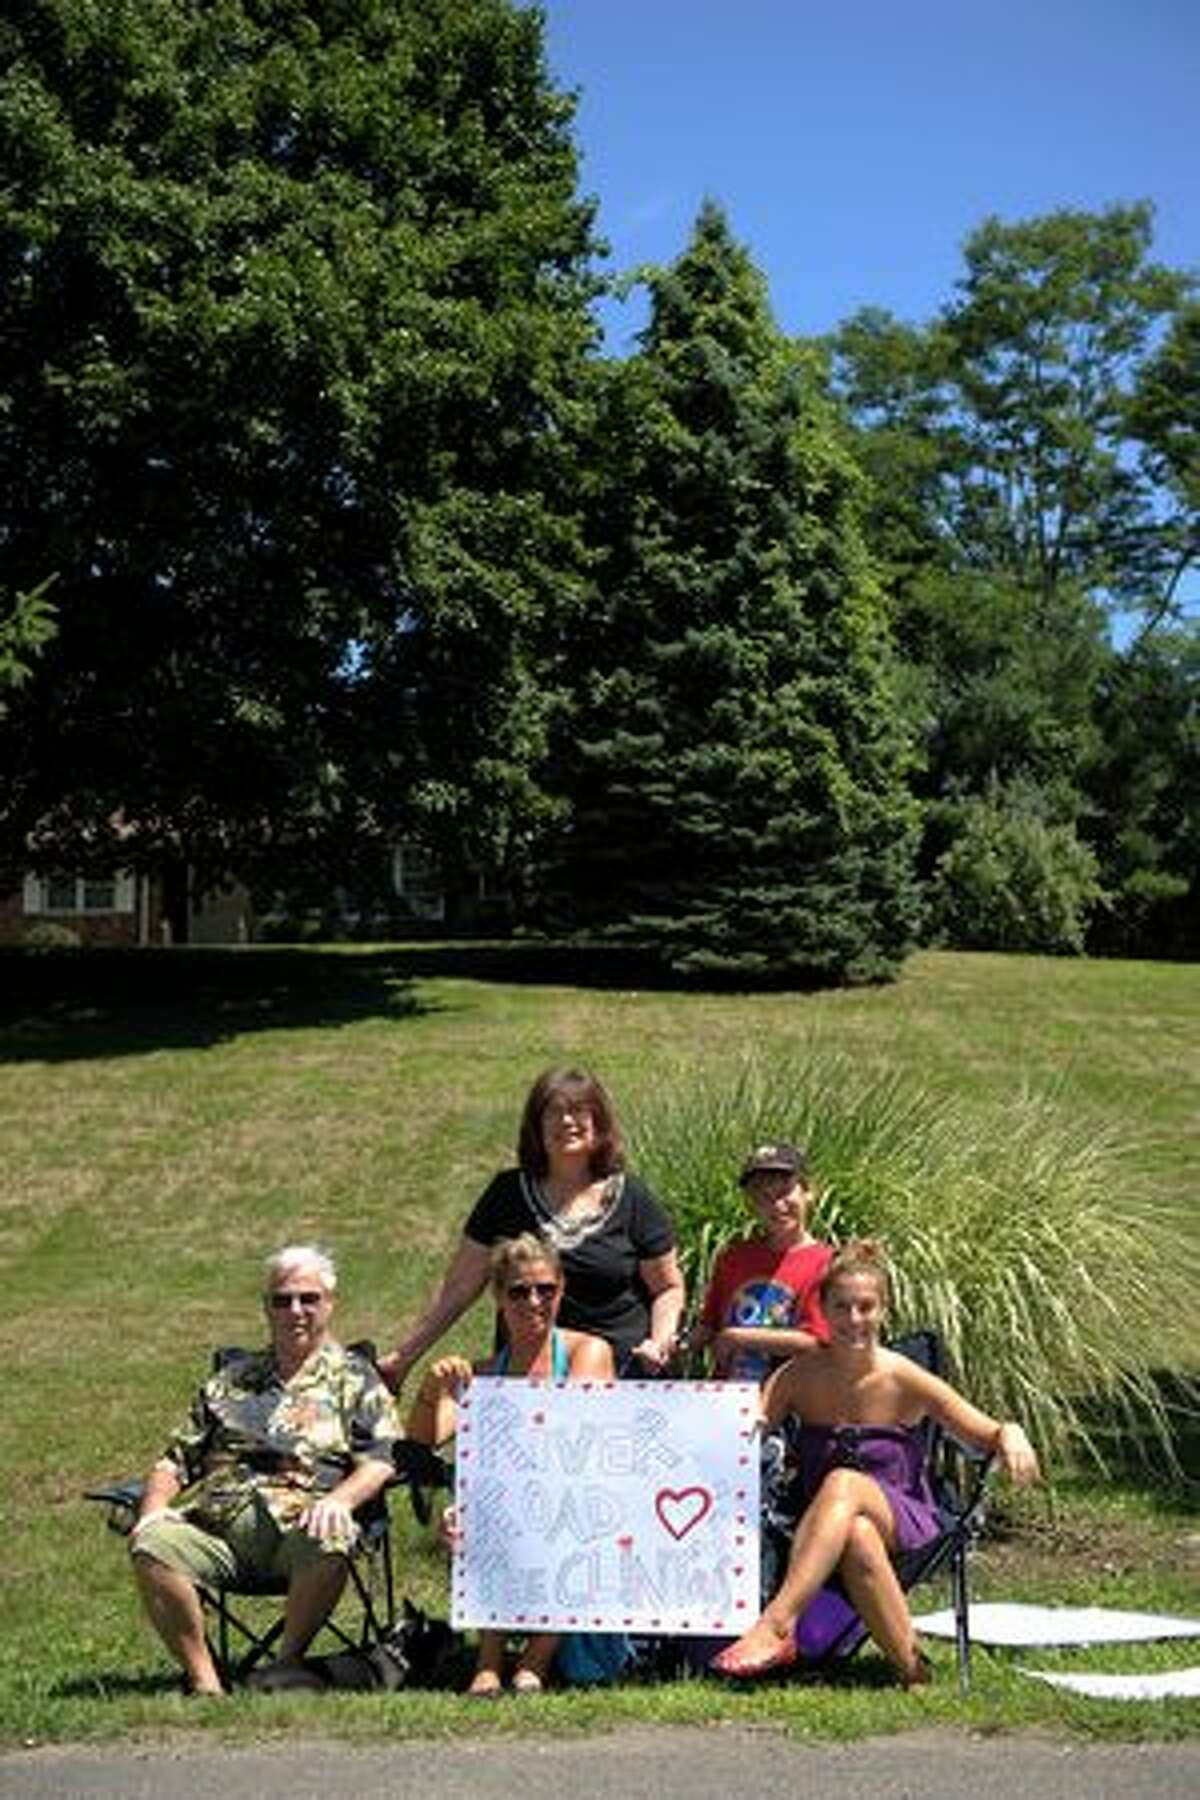 Rhinebeck residents (front row L-R) Norman Gastman, Rachael Scorca, Harleigh Gastman, (back row L-R) Amy Scorca and Uri Rooselaar hold up a sign showing their support as the town prepares for the wedding of Chelsea Clinton and Marc Mezvinsky on July 31, 2010 in Rhinebeck, New York.